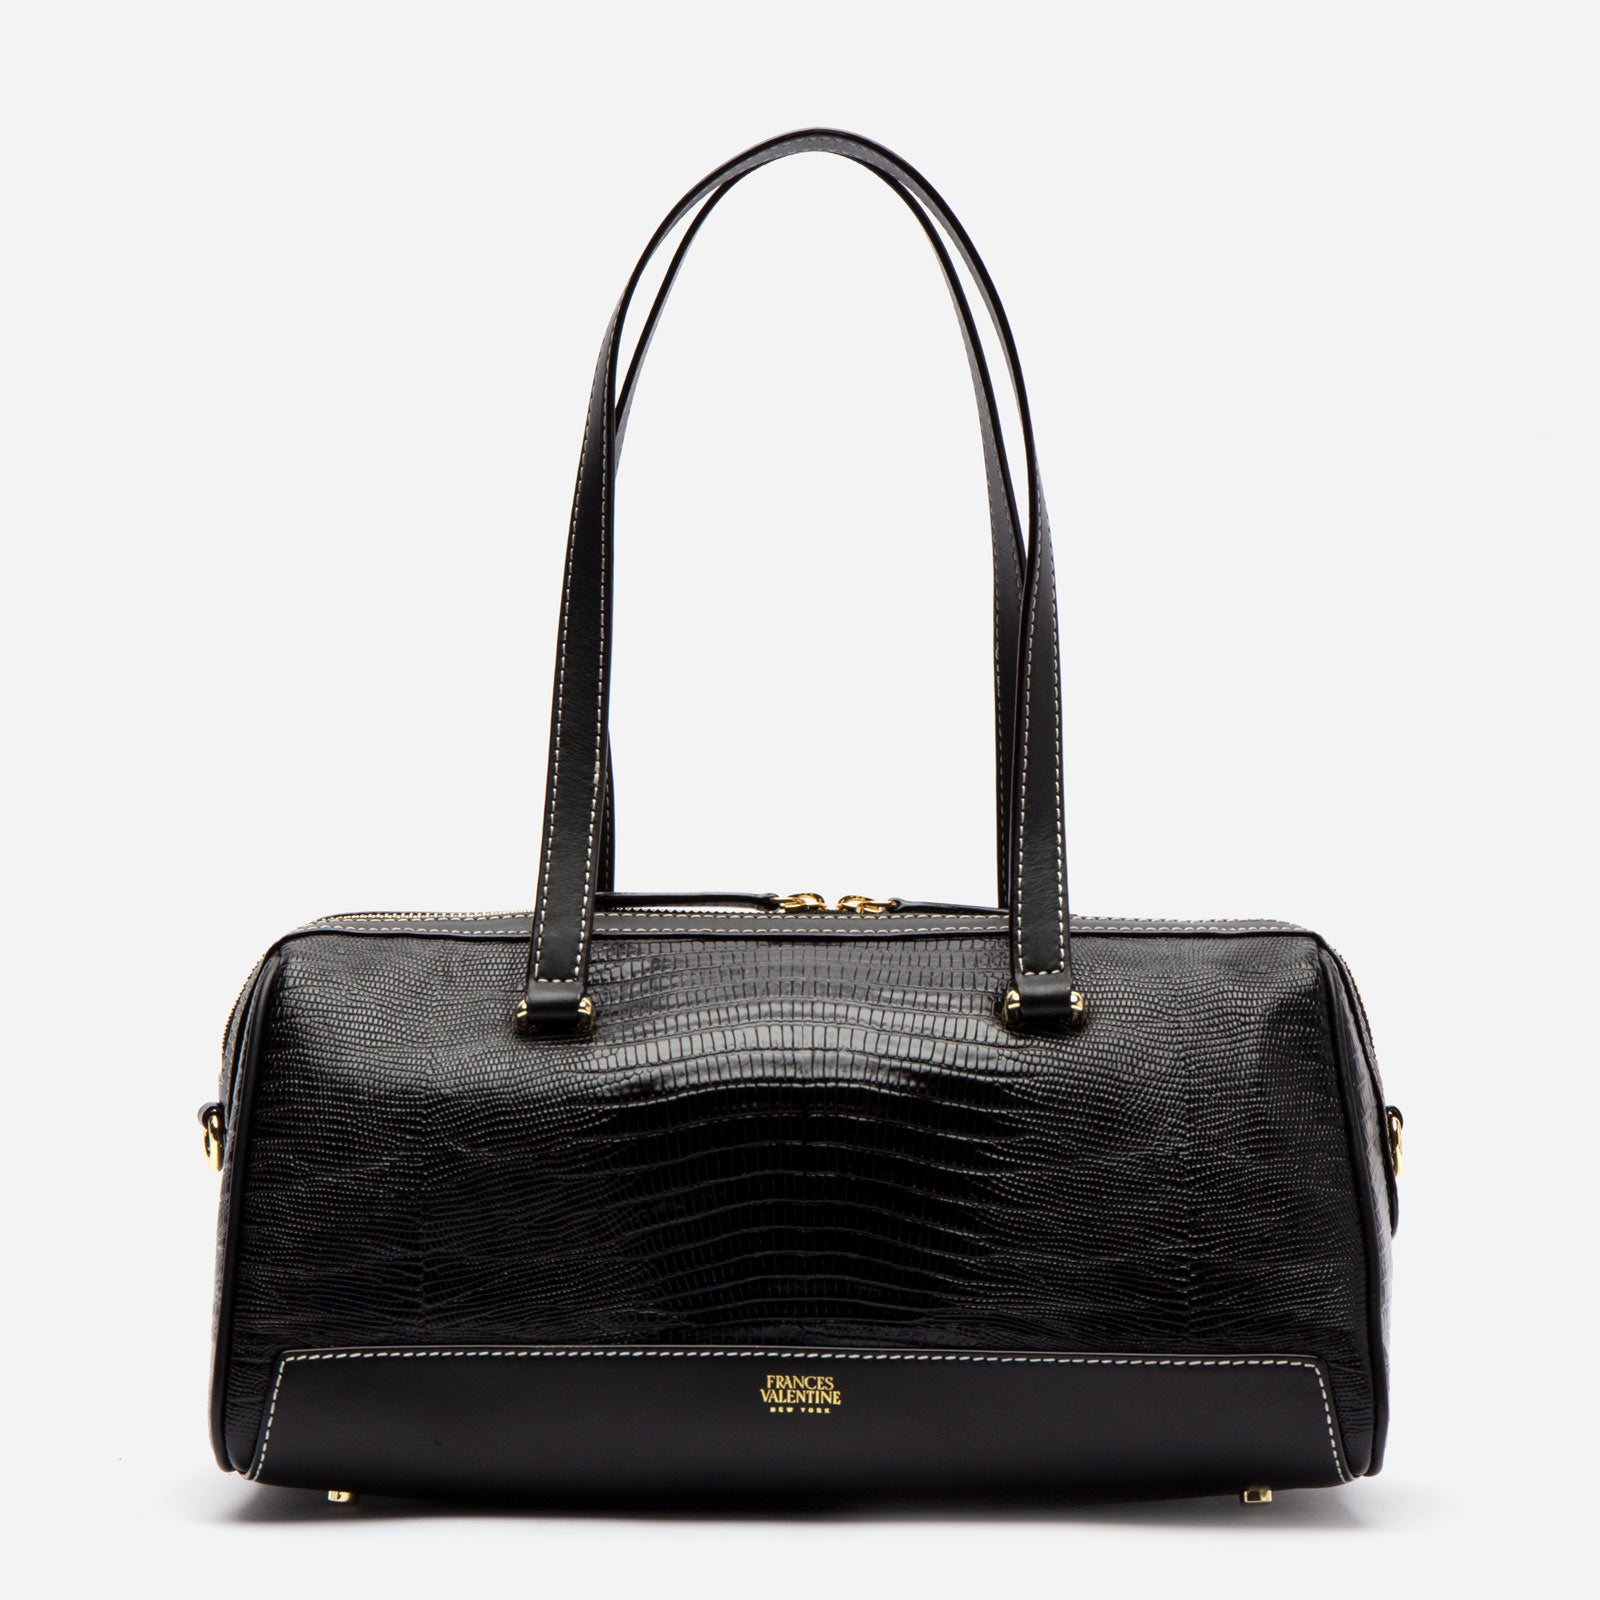 Avril Barrel Bag Embossed Lizard Black - Frances Valentine